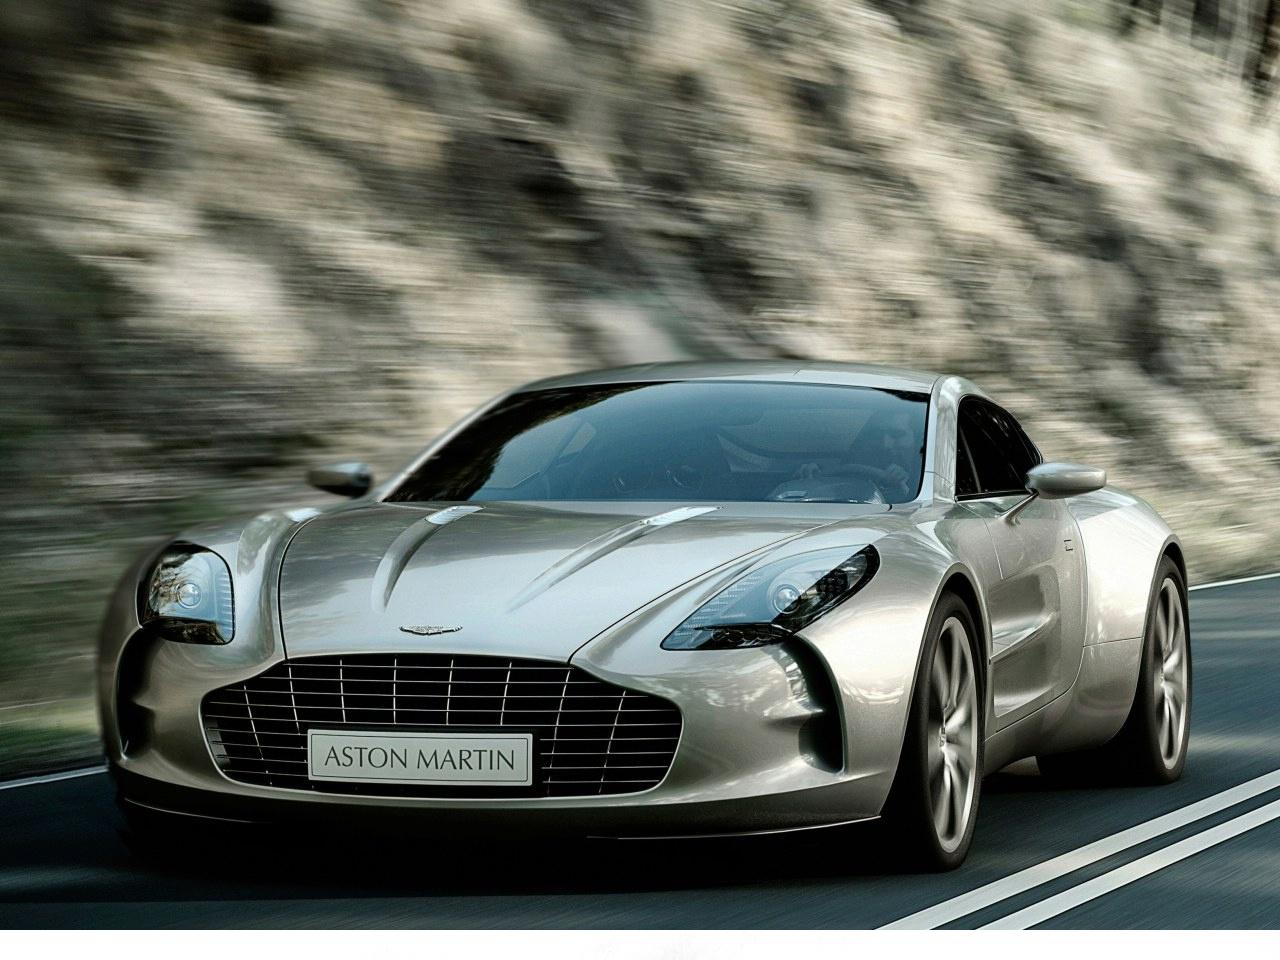 The-Aston-Martin-One-wallpaper-wp5809977